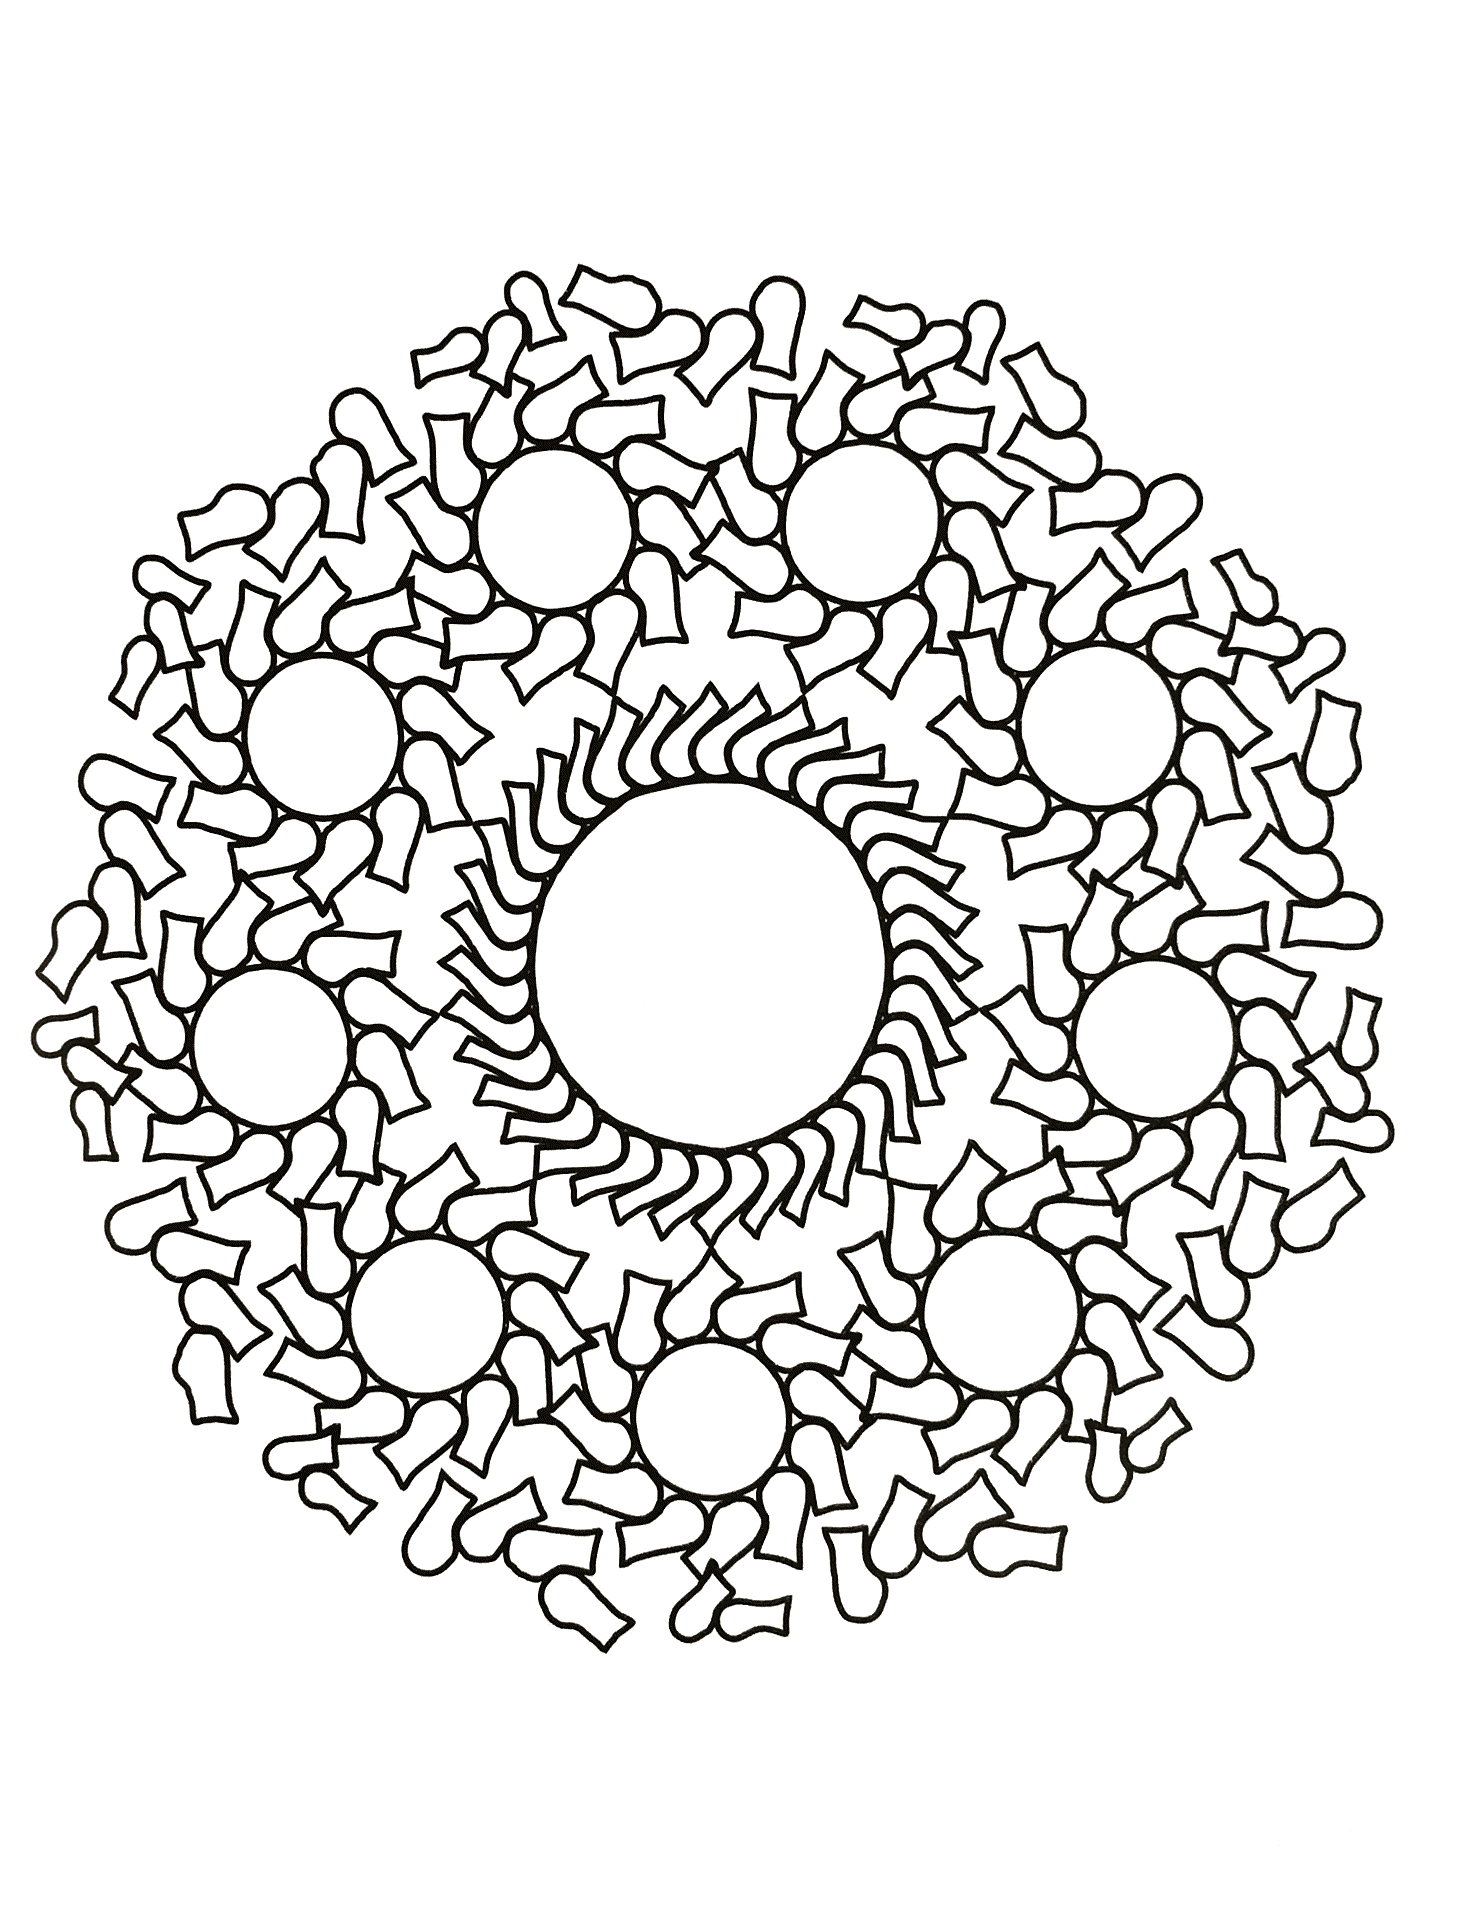 Mandalas to download for free 7